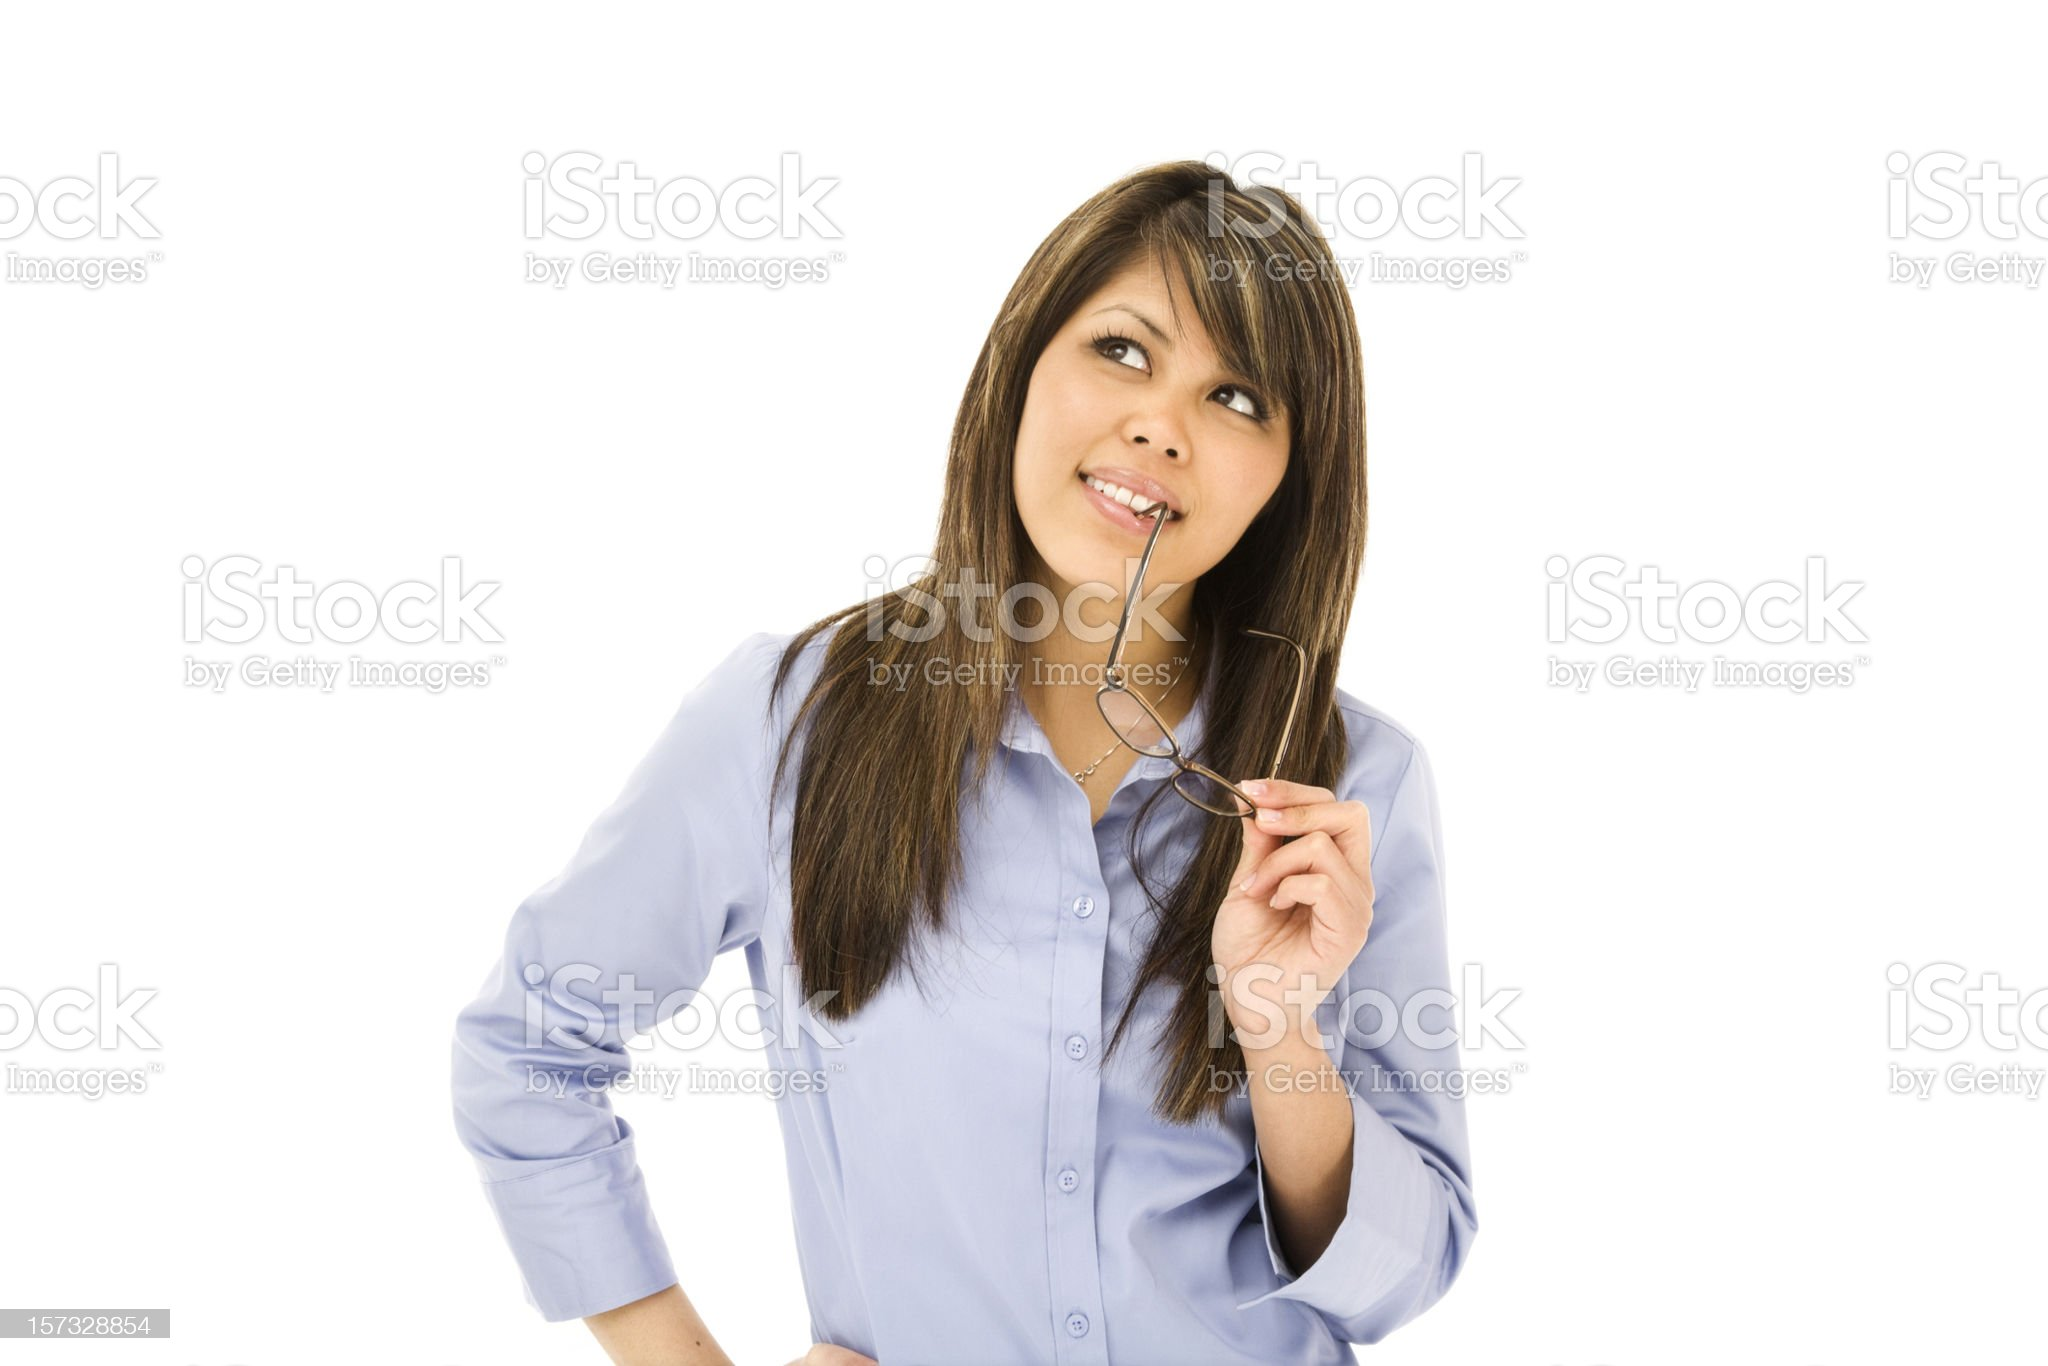 Contemplative Young Woman royalty-free stock photo